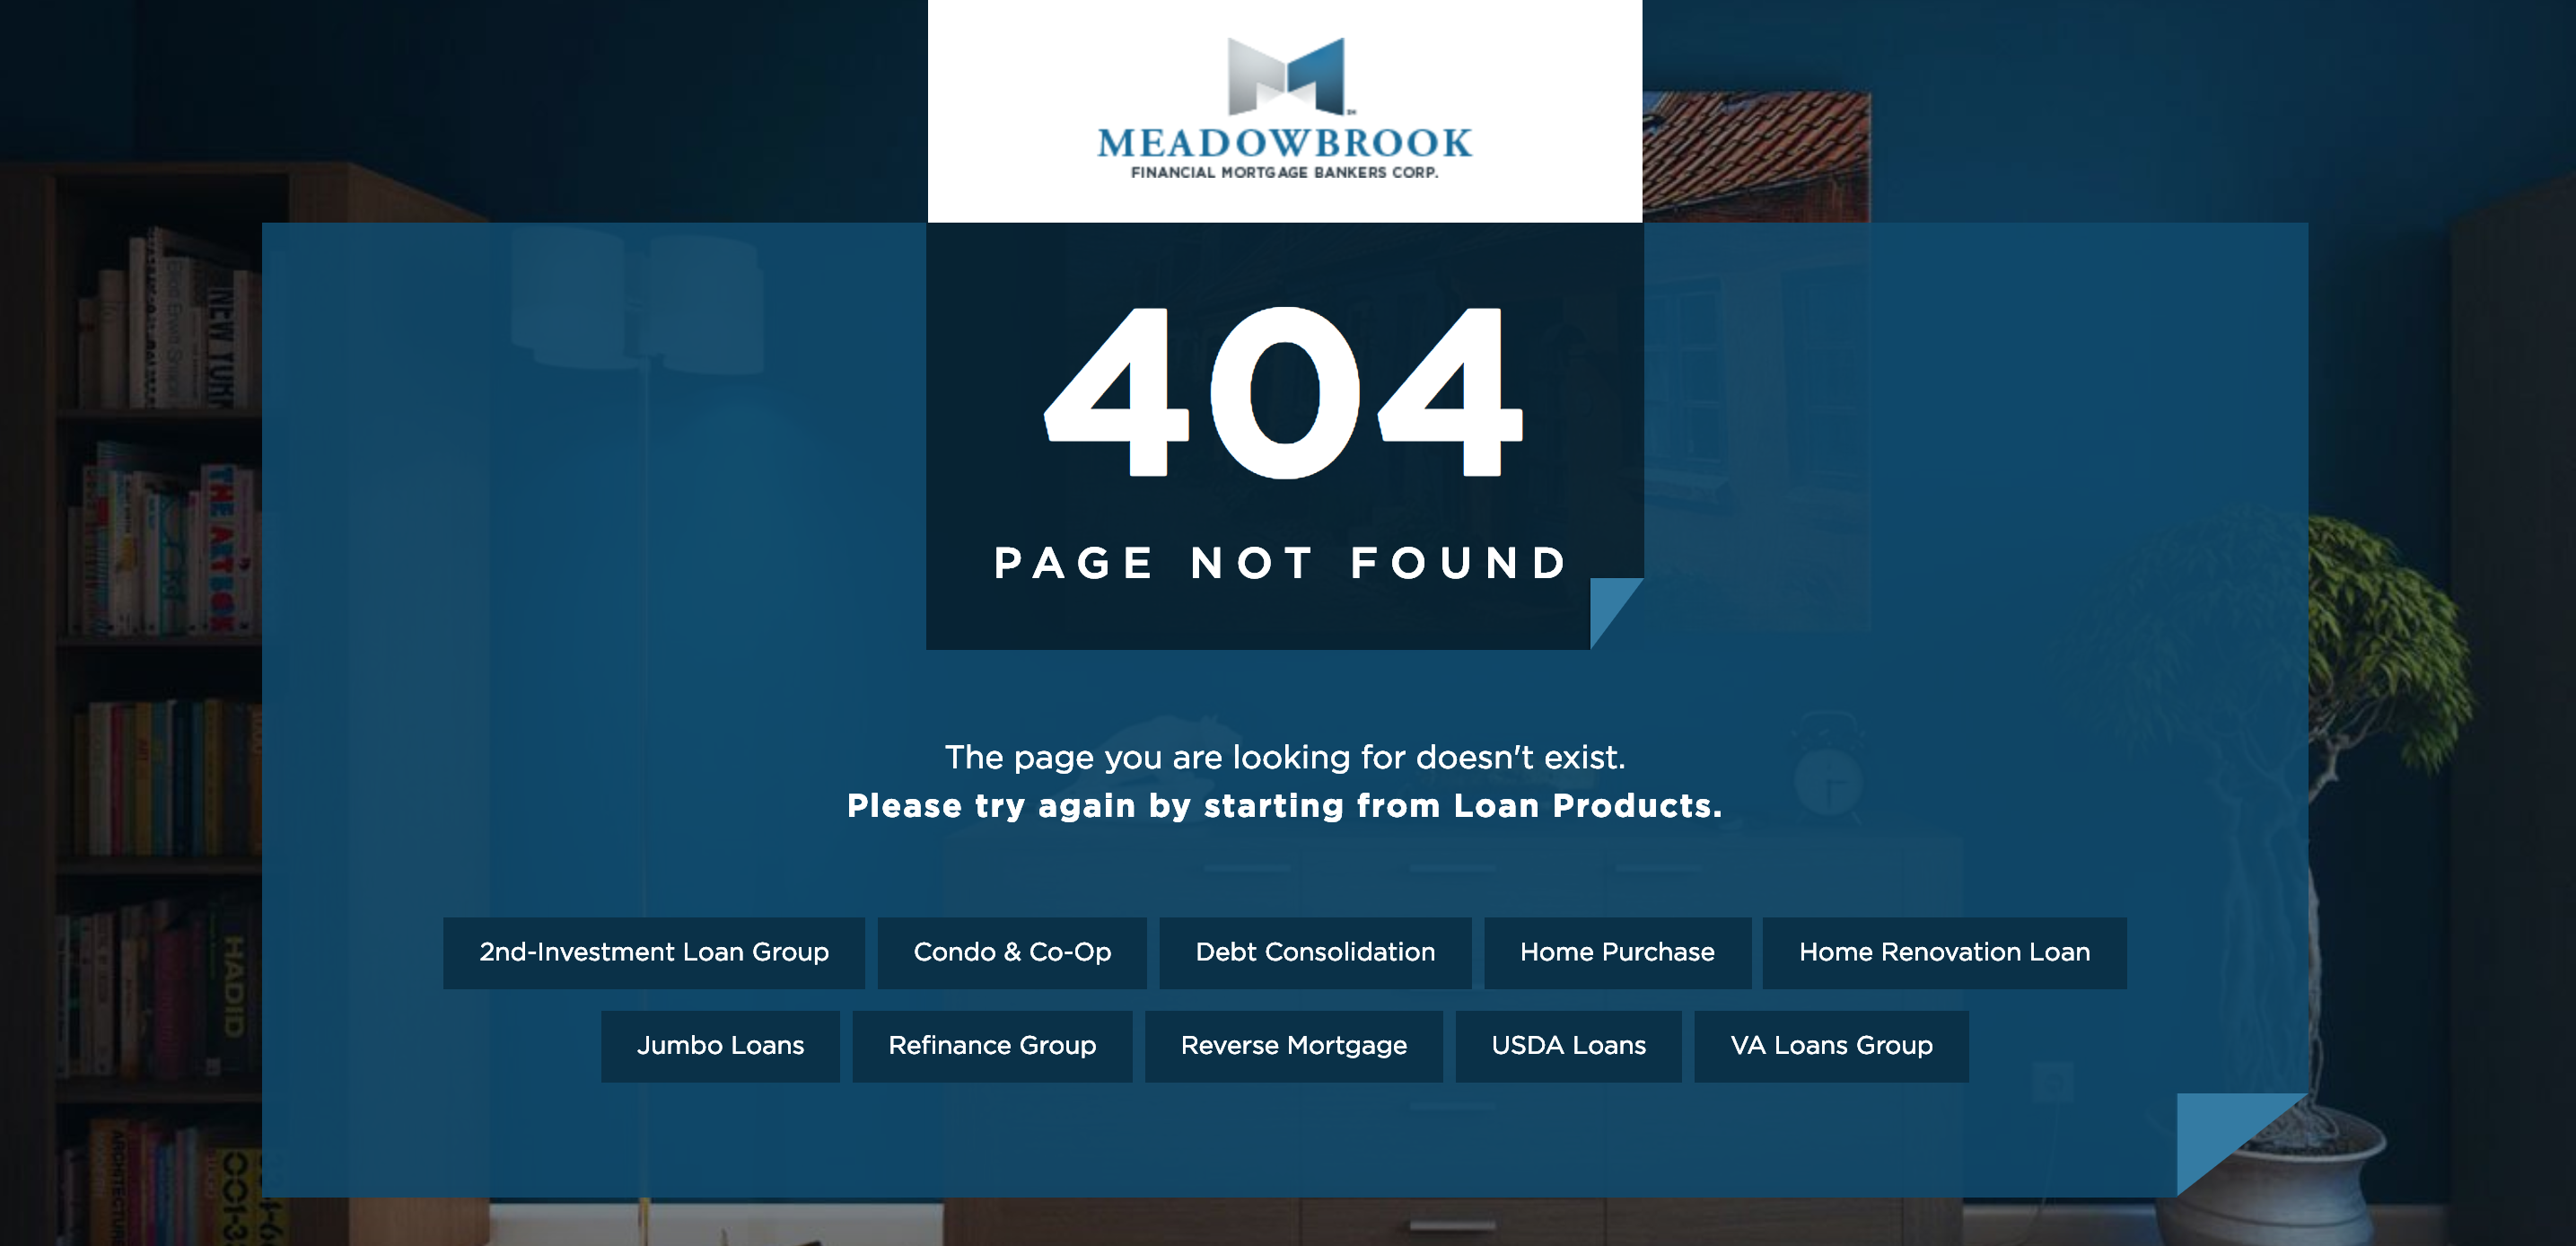 Meadowbrook 404 error page created by TND